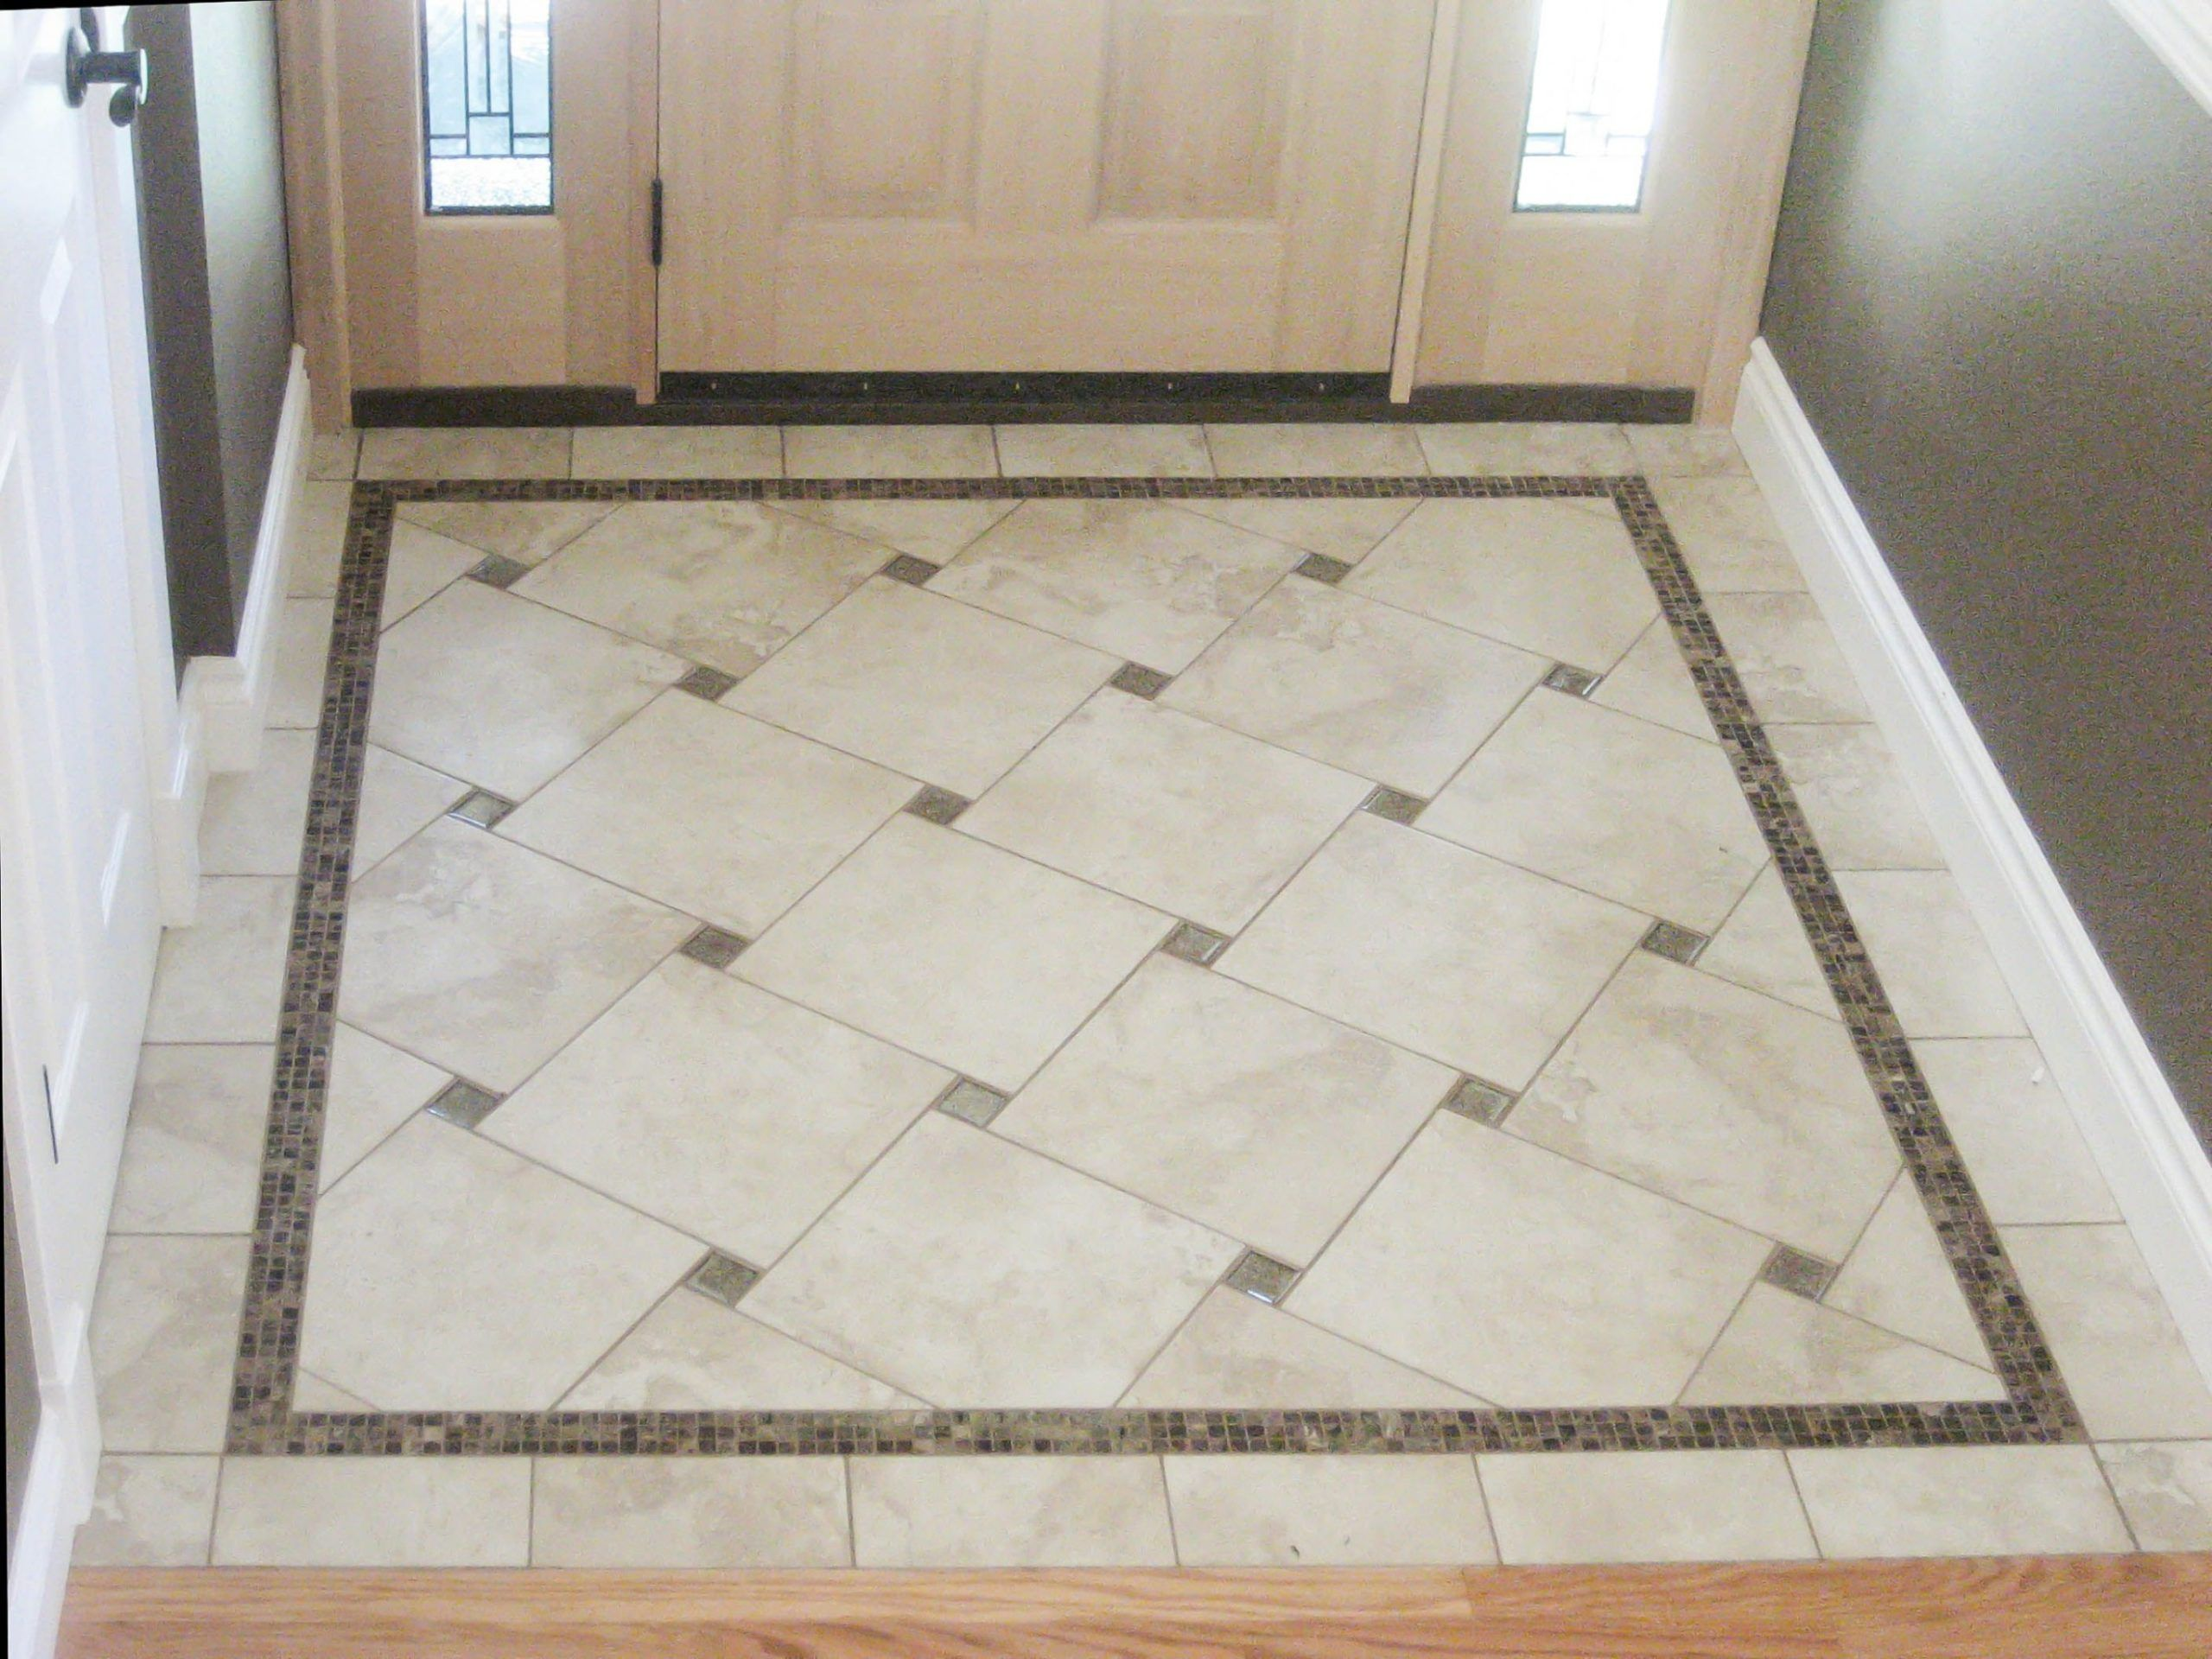 10 Taboos About Ceramic Tile Floor Ideas You Should Never Share On